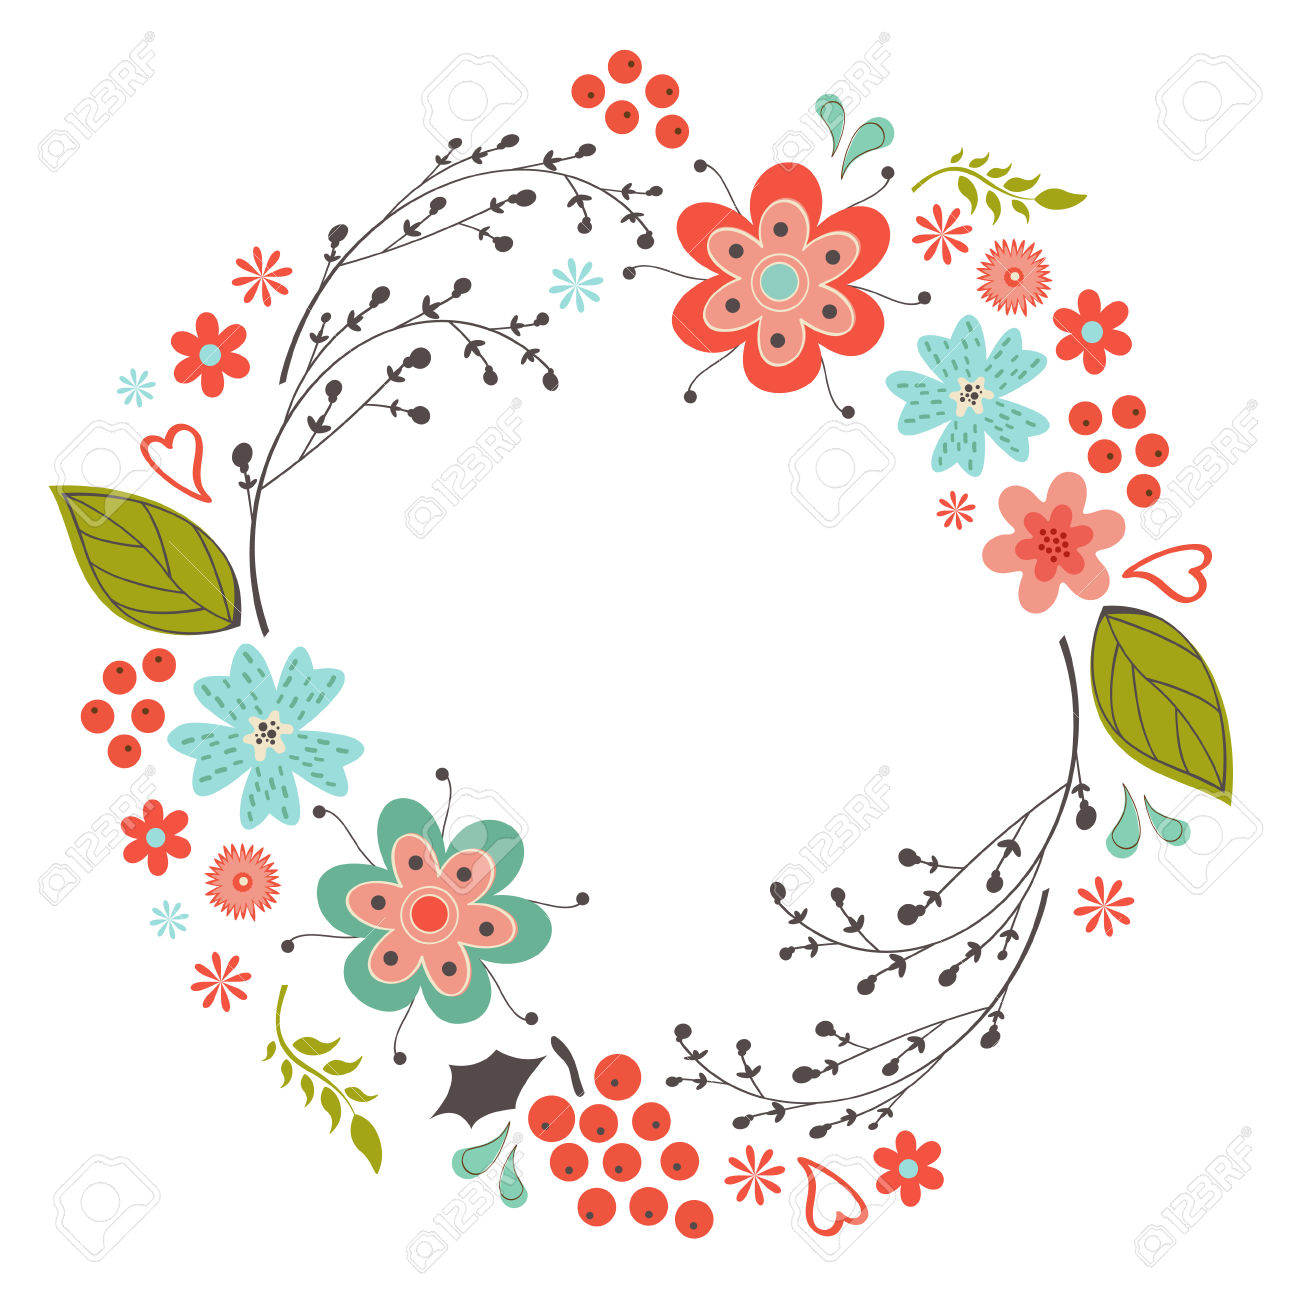 circle flower wreath clipart - Clipground